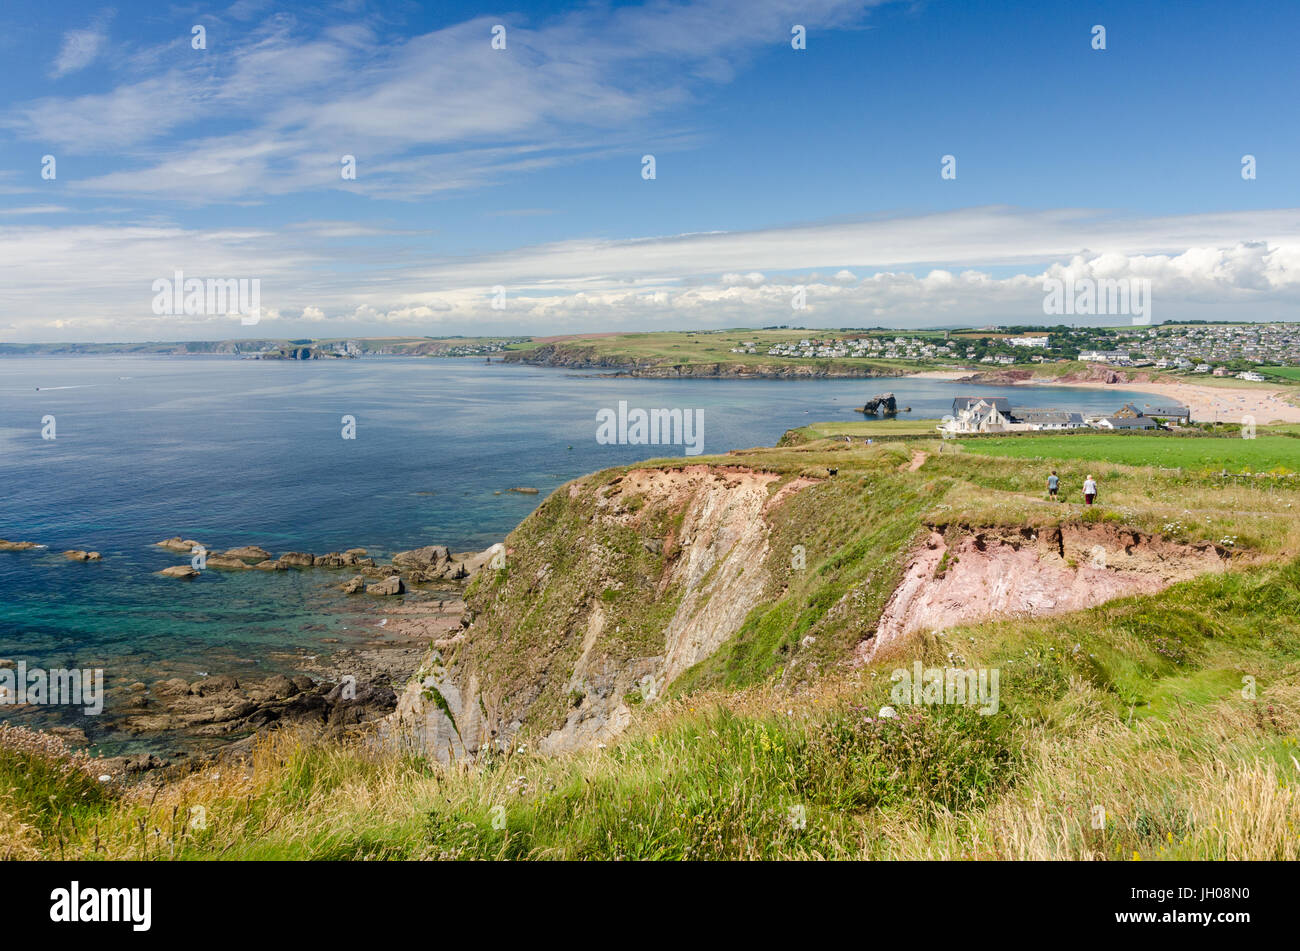 The South West Coast Path between Hope Cove and Thurlestone in the South Hams, Devon - Stock Image